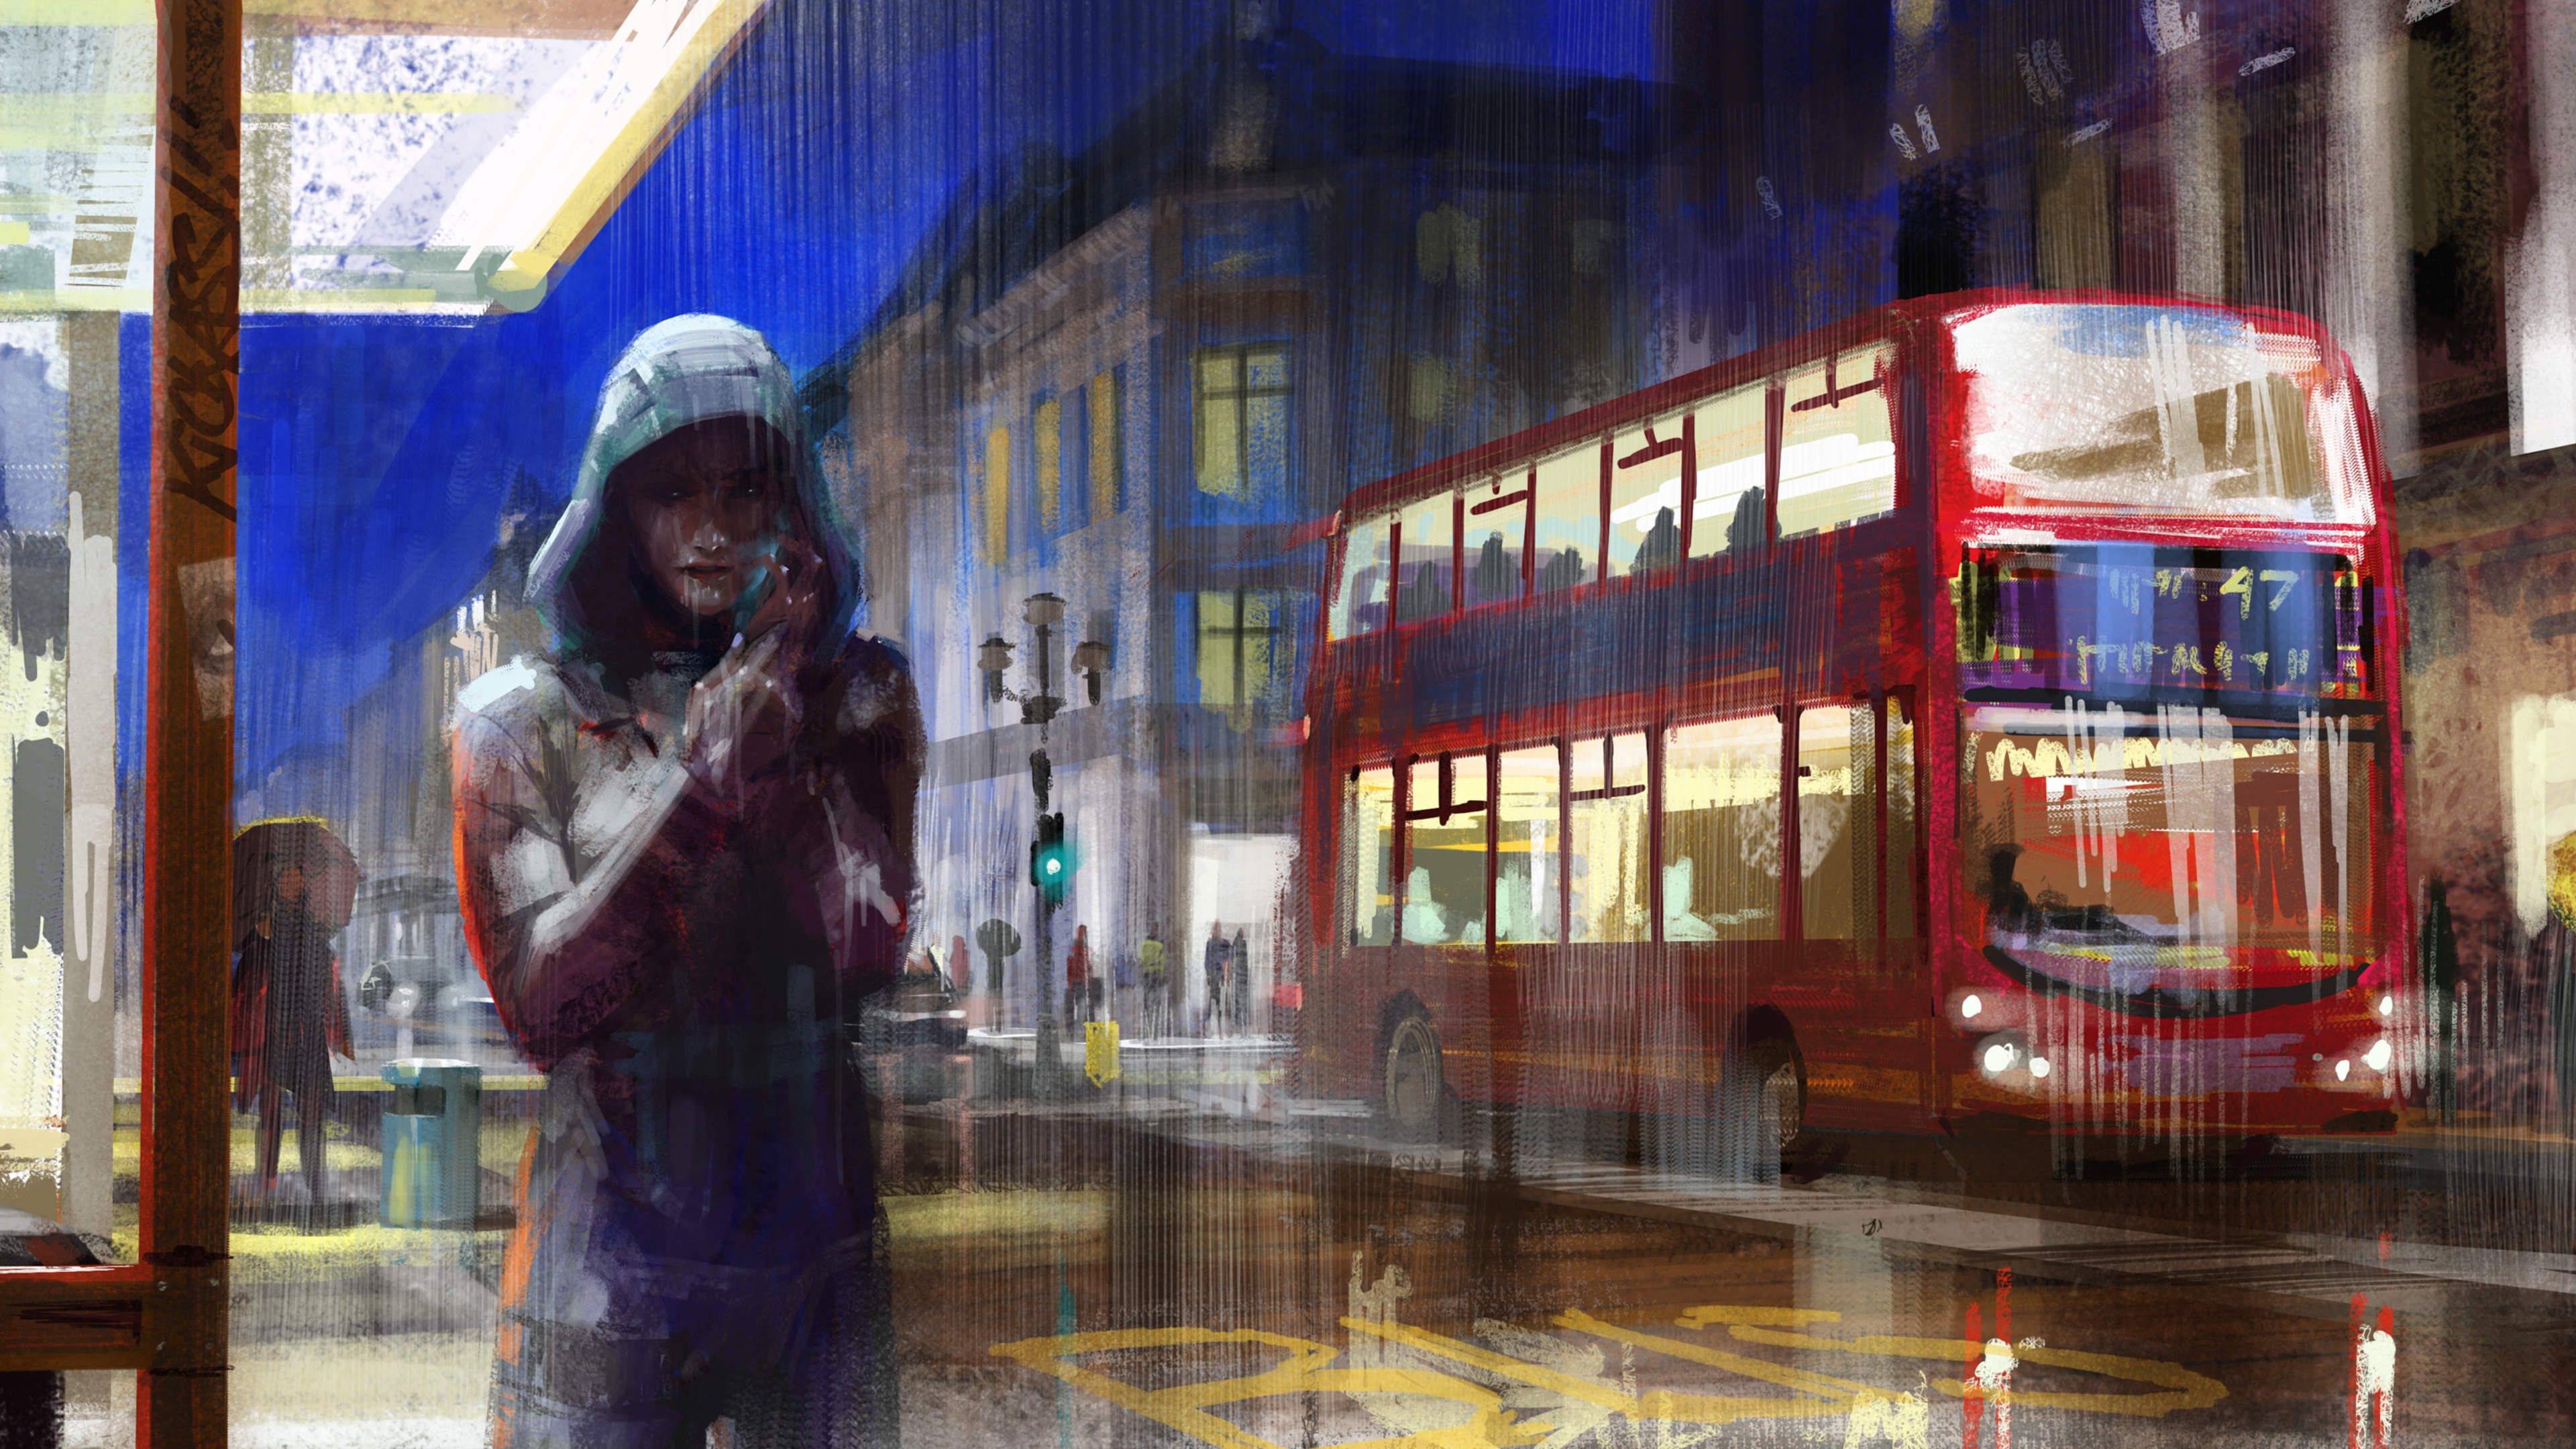 alone girl city painting 4k 1540755857 - Alone Girl City Painting 4k - hd-wallpapers, digital art wallpapers, bus wallpapers, artwork wallpapers, artist wallpapers, alone wallpapers, 4k-wallpapers